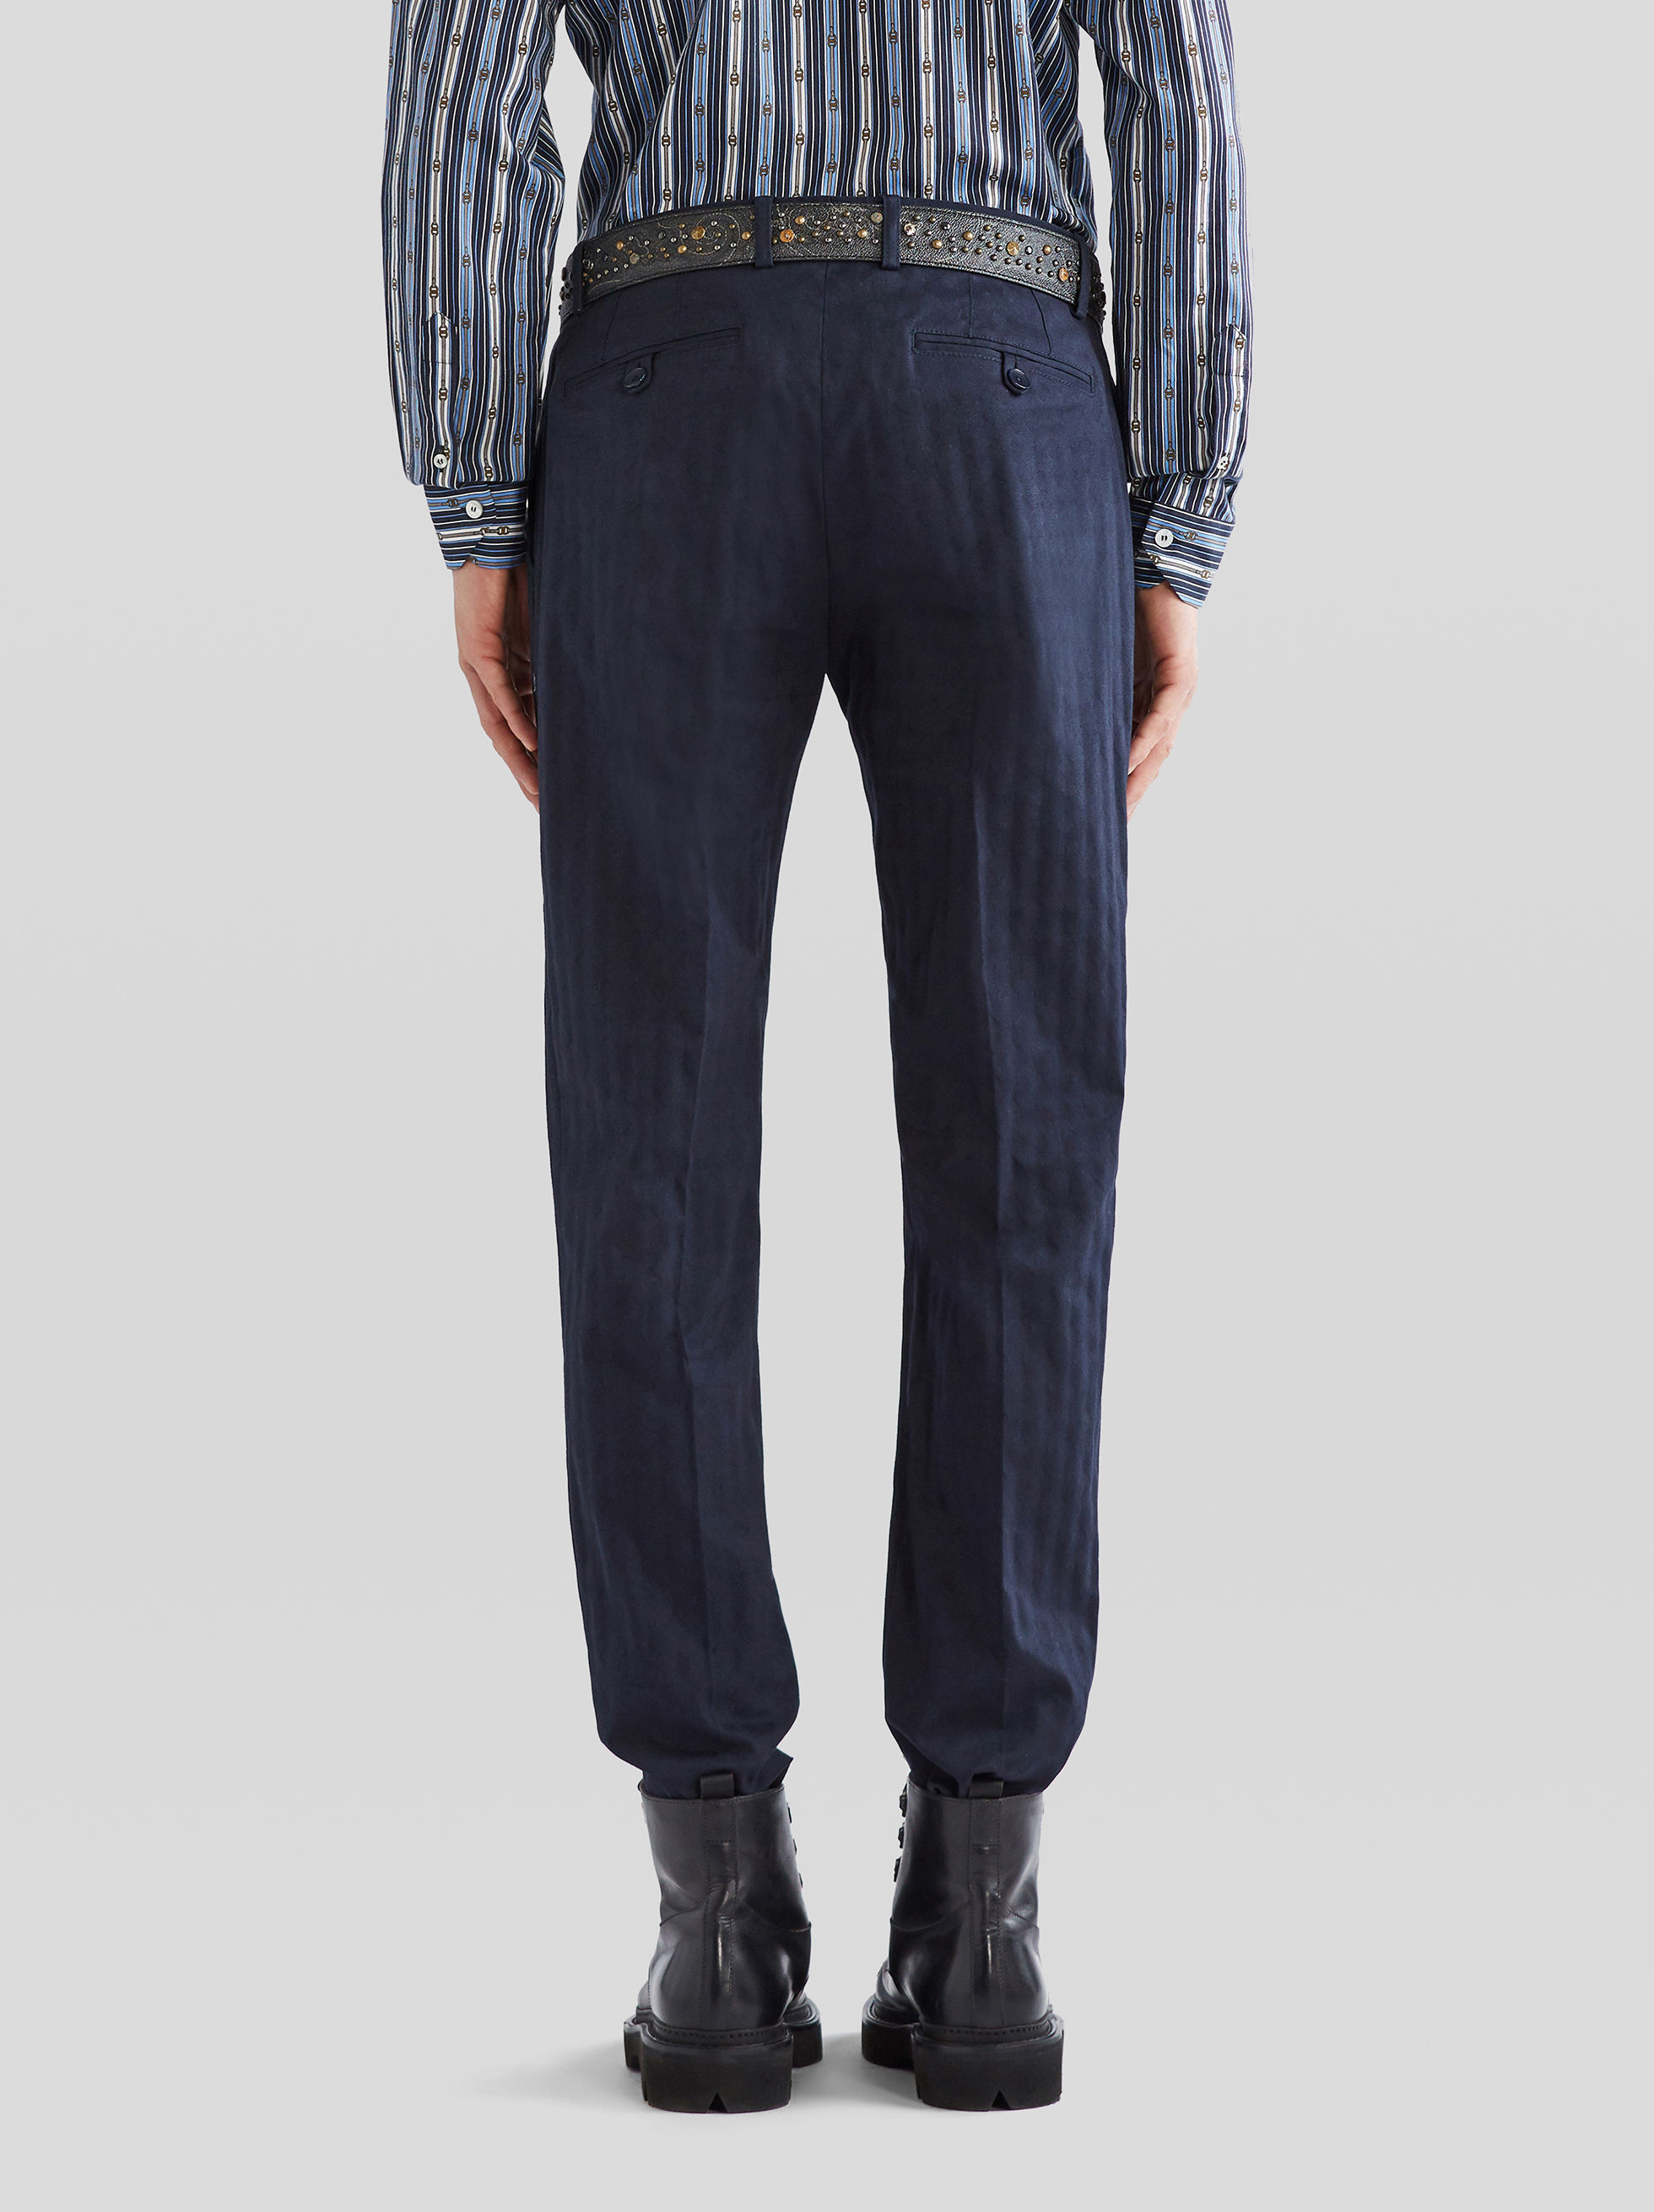 JACQUARD CASUAL TROUSERS WITH GEOMETRIC PATTERN